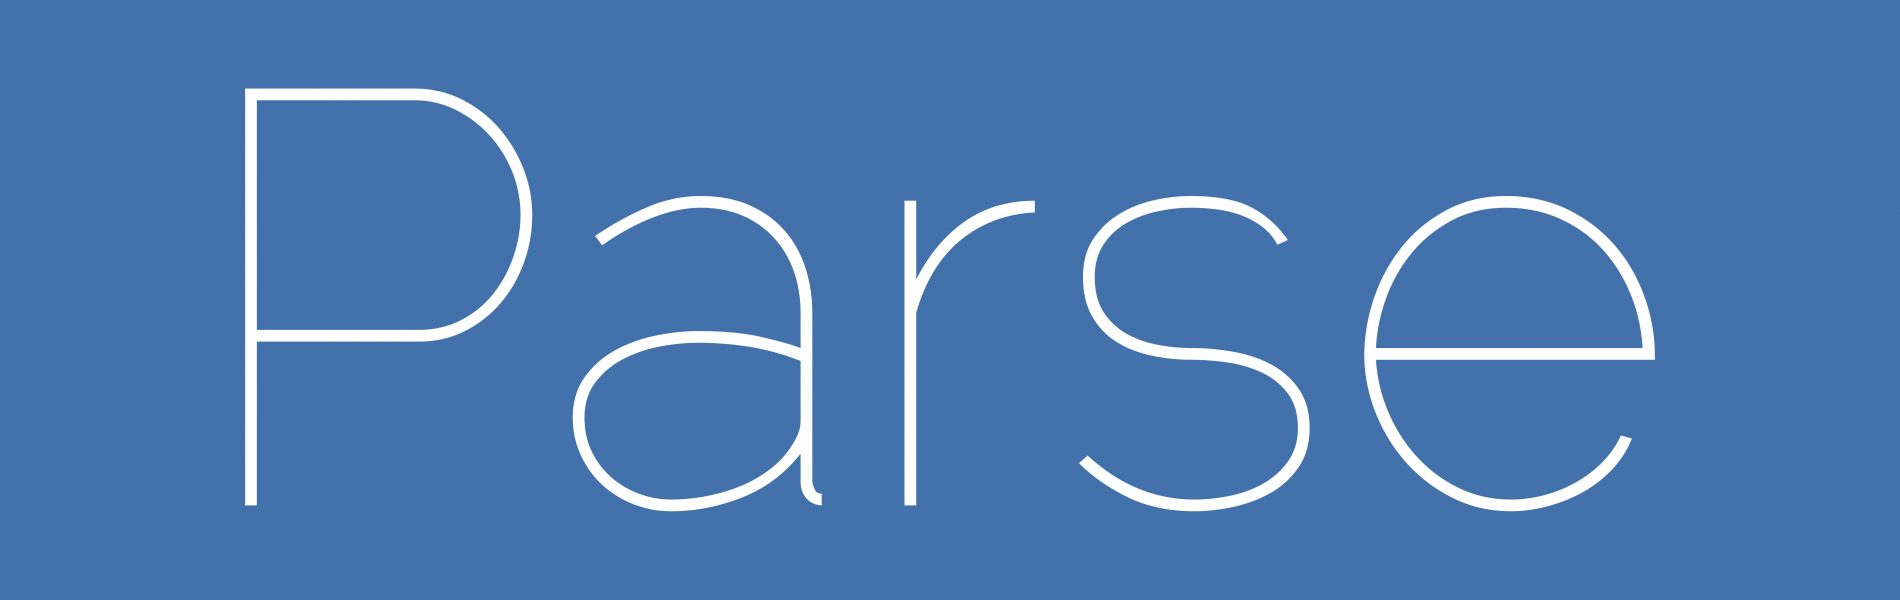 Why is Parse shutting down?